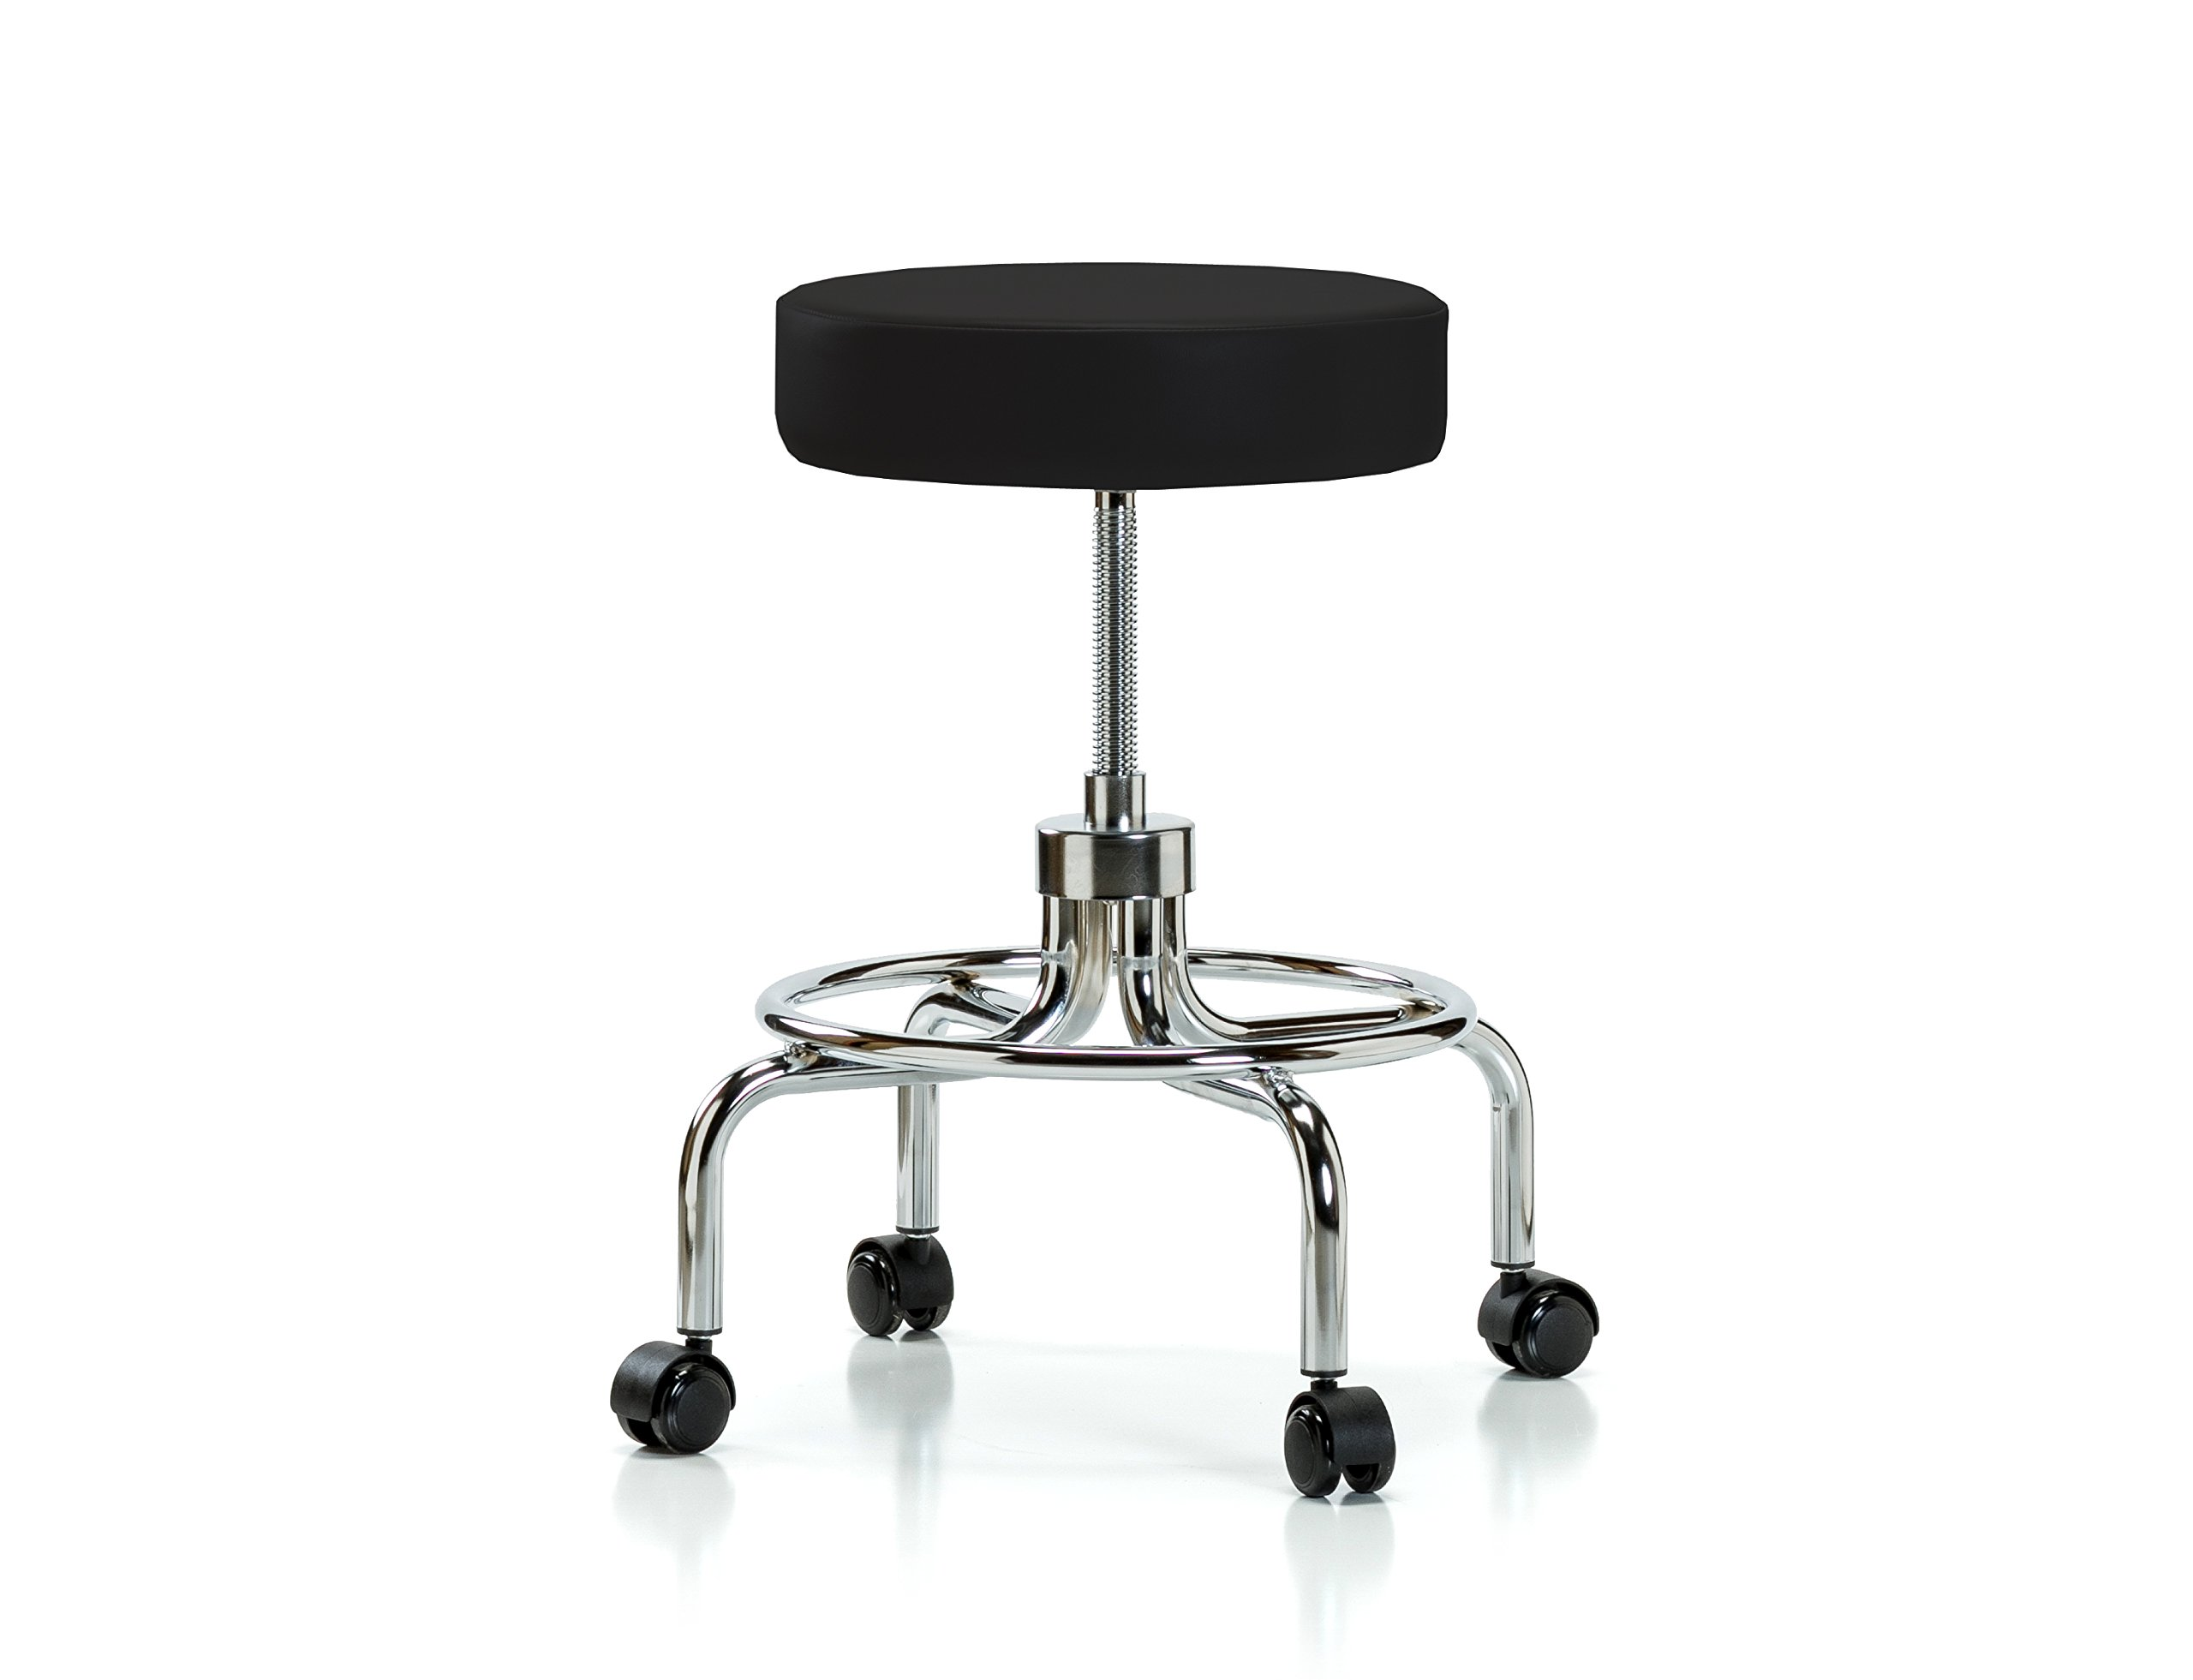 PERCH Chairs & Stools PERCH Rolling Retro Exam Stool with Wheels for Hardwood or Tile Floors, Black Vinyl